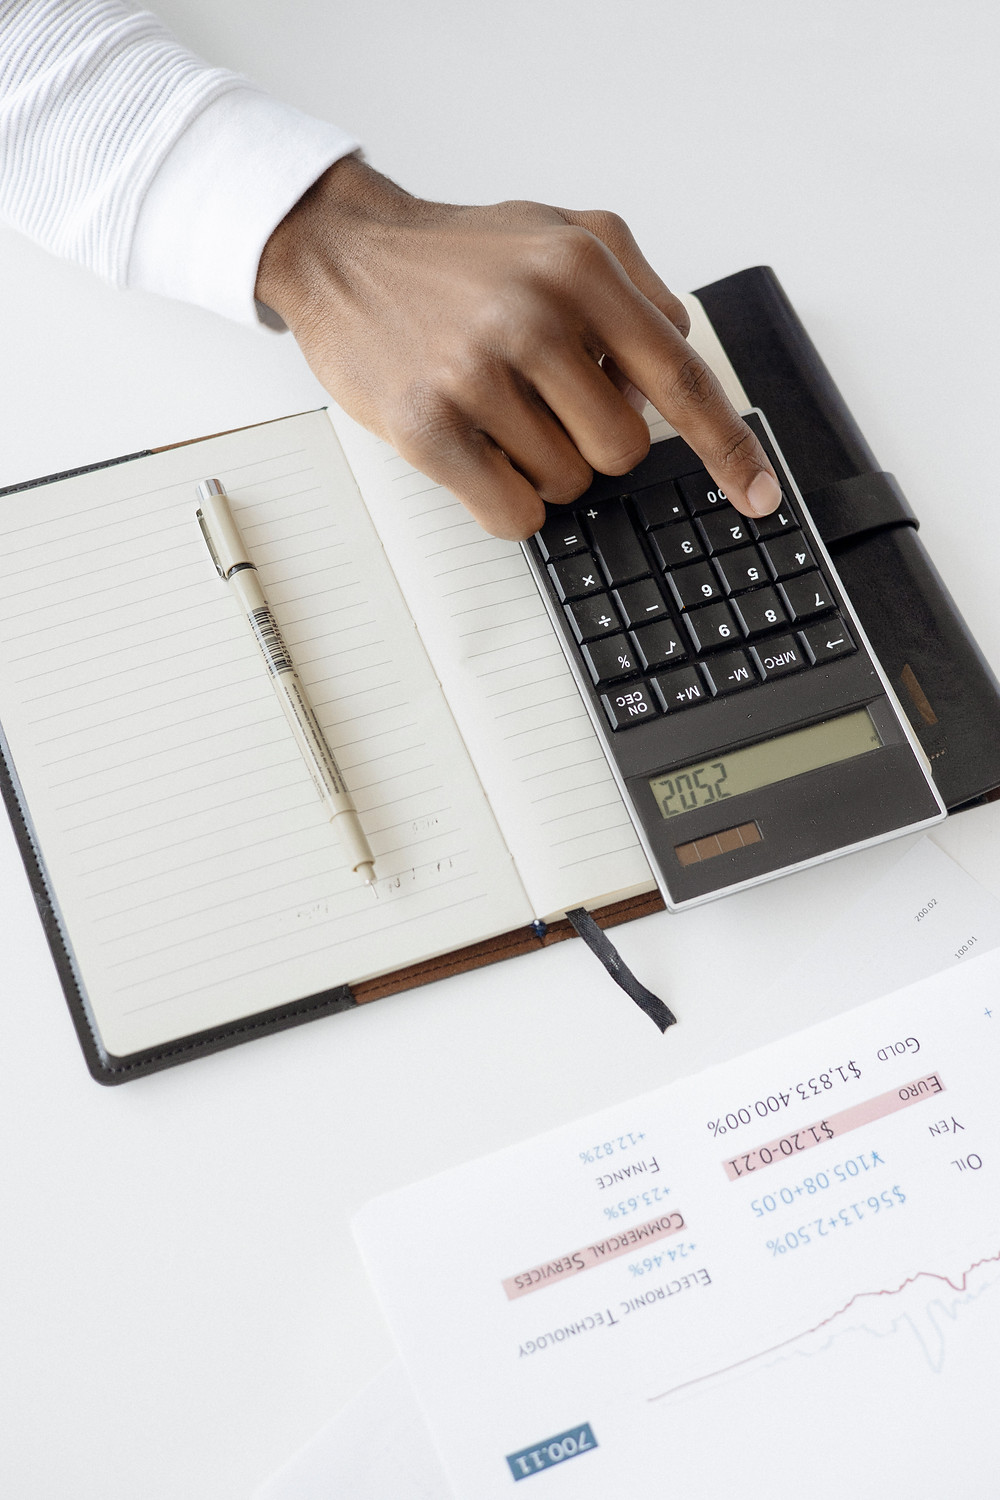 black woman's hand using a calculator on top of a notebook under a financial statement